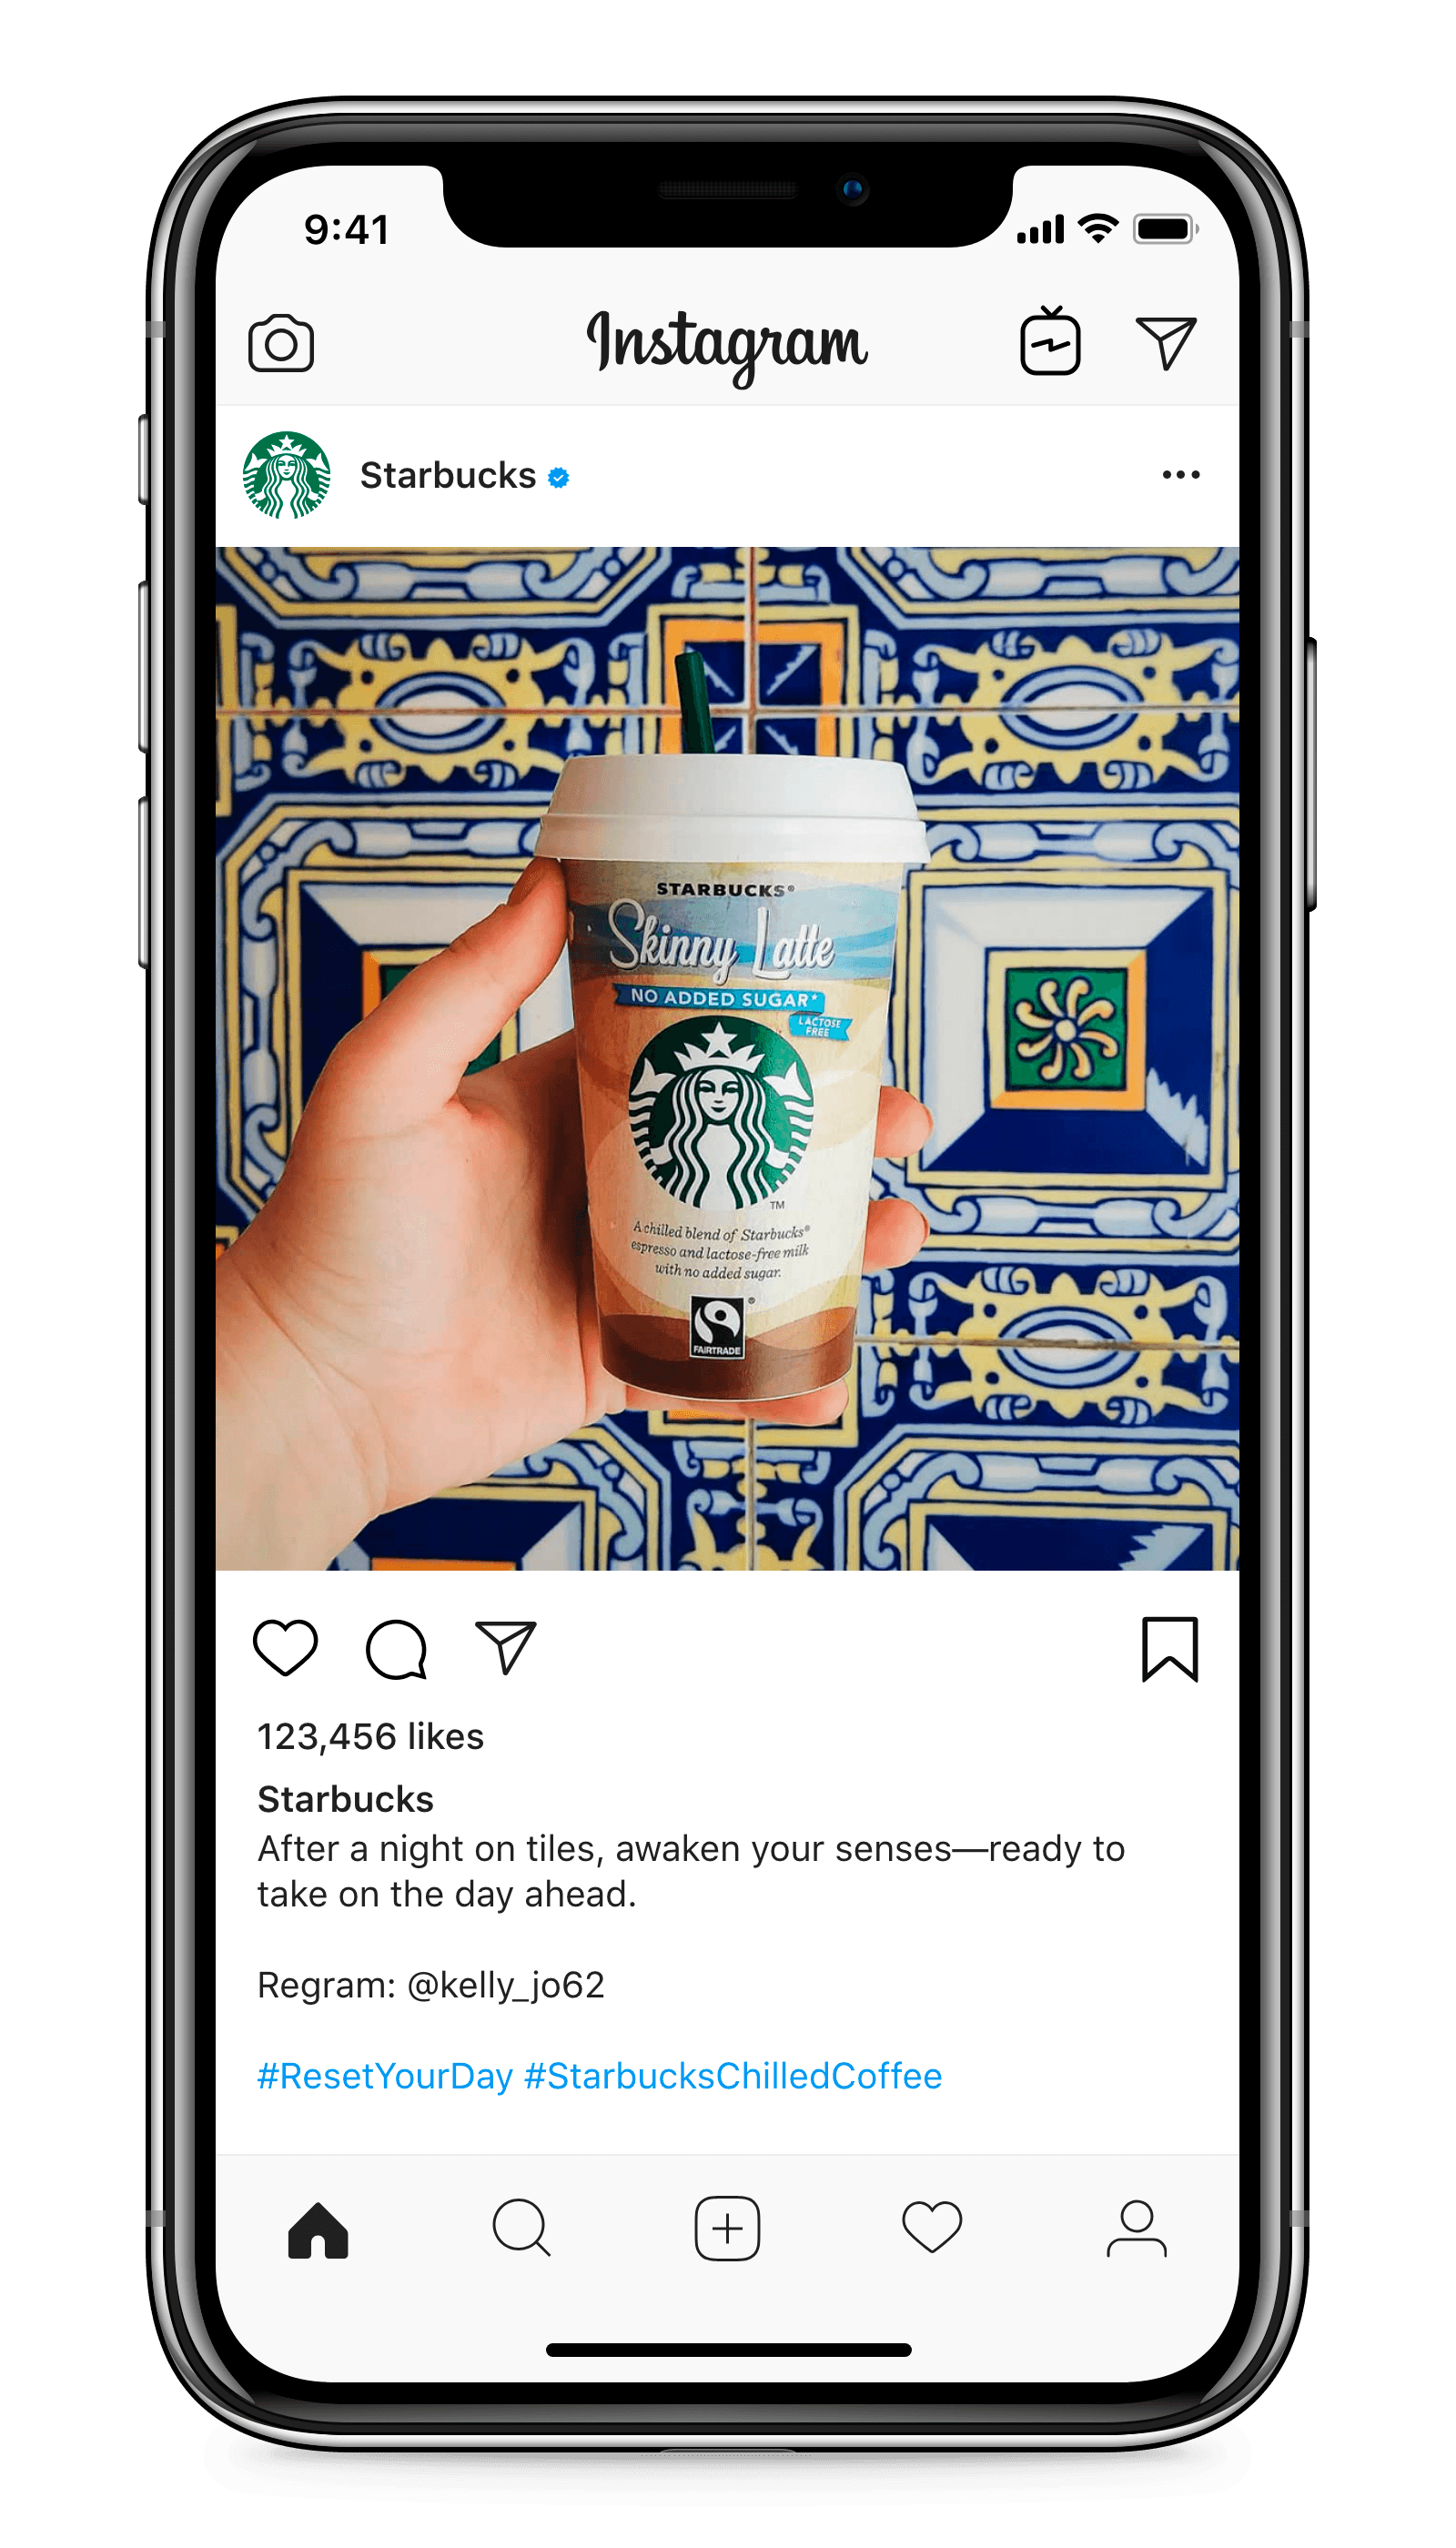 Starbucks_Chilled_Social3_small.png